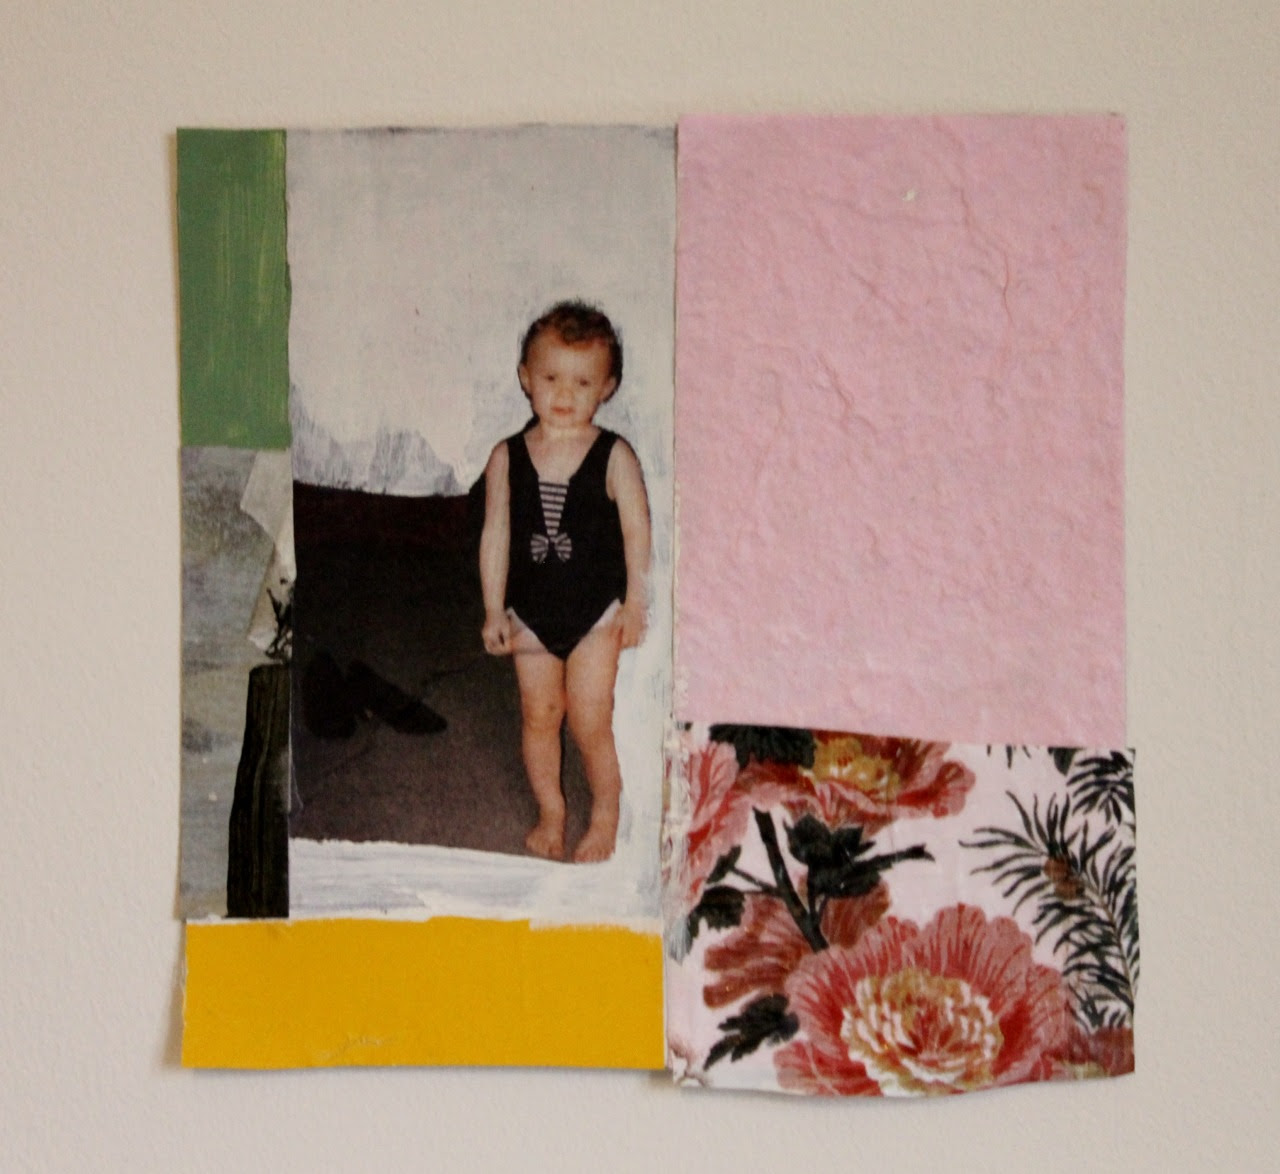 Collage inspired by Jimmie James >http://jimmiejames.tumblr.com/ Frances L Prendergast mixed media 2014